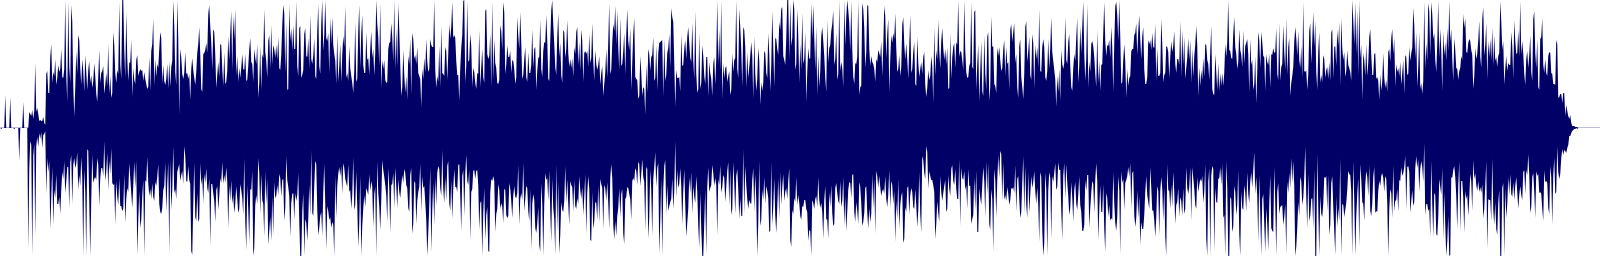 waveform of track #153282